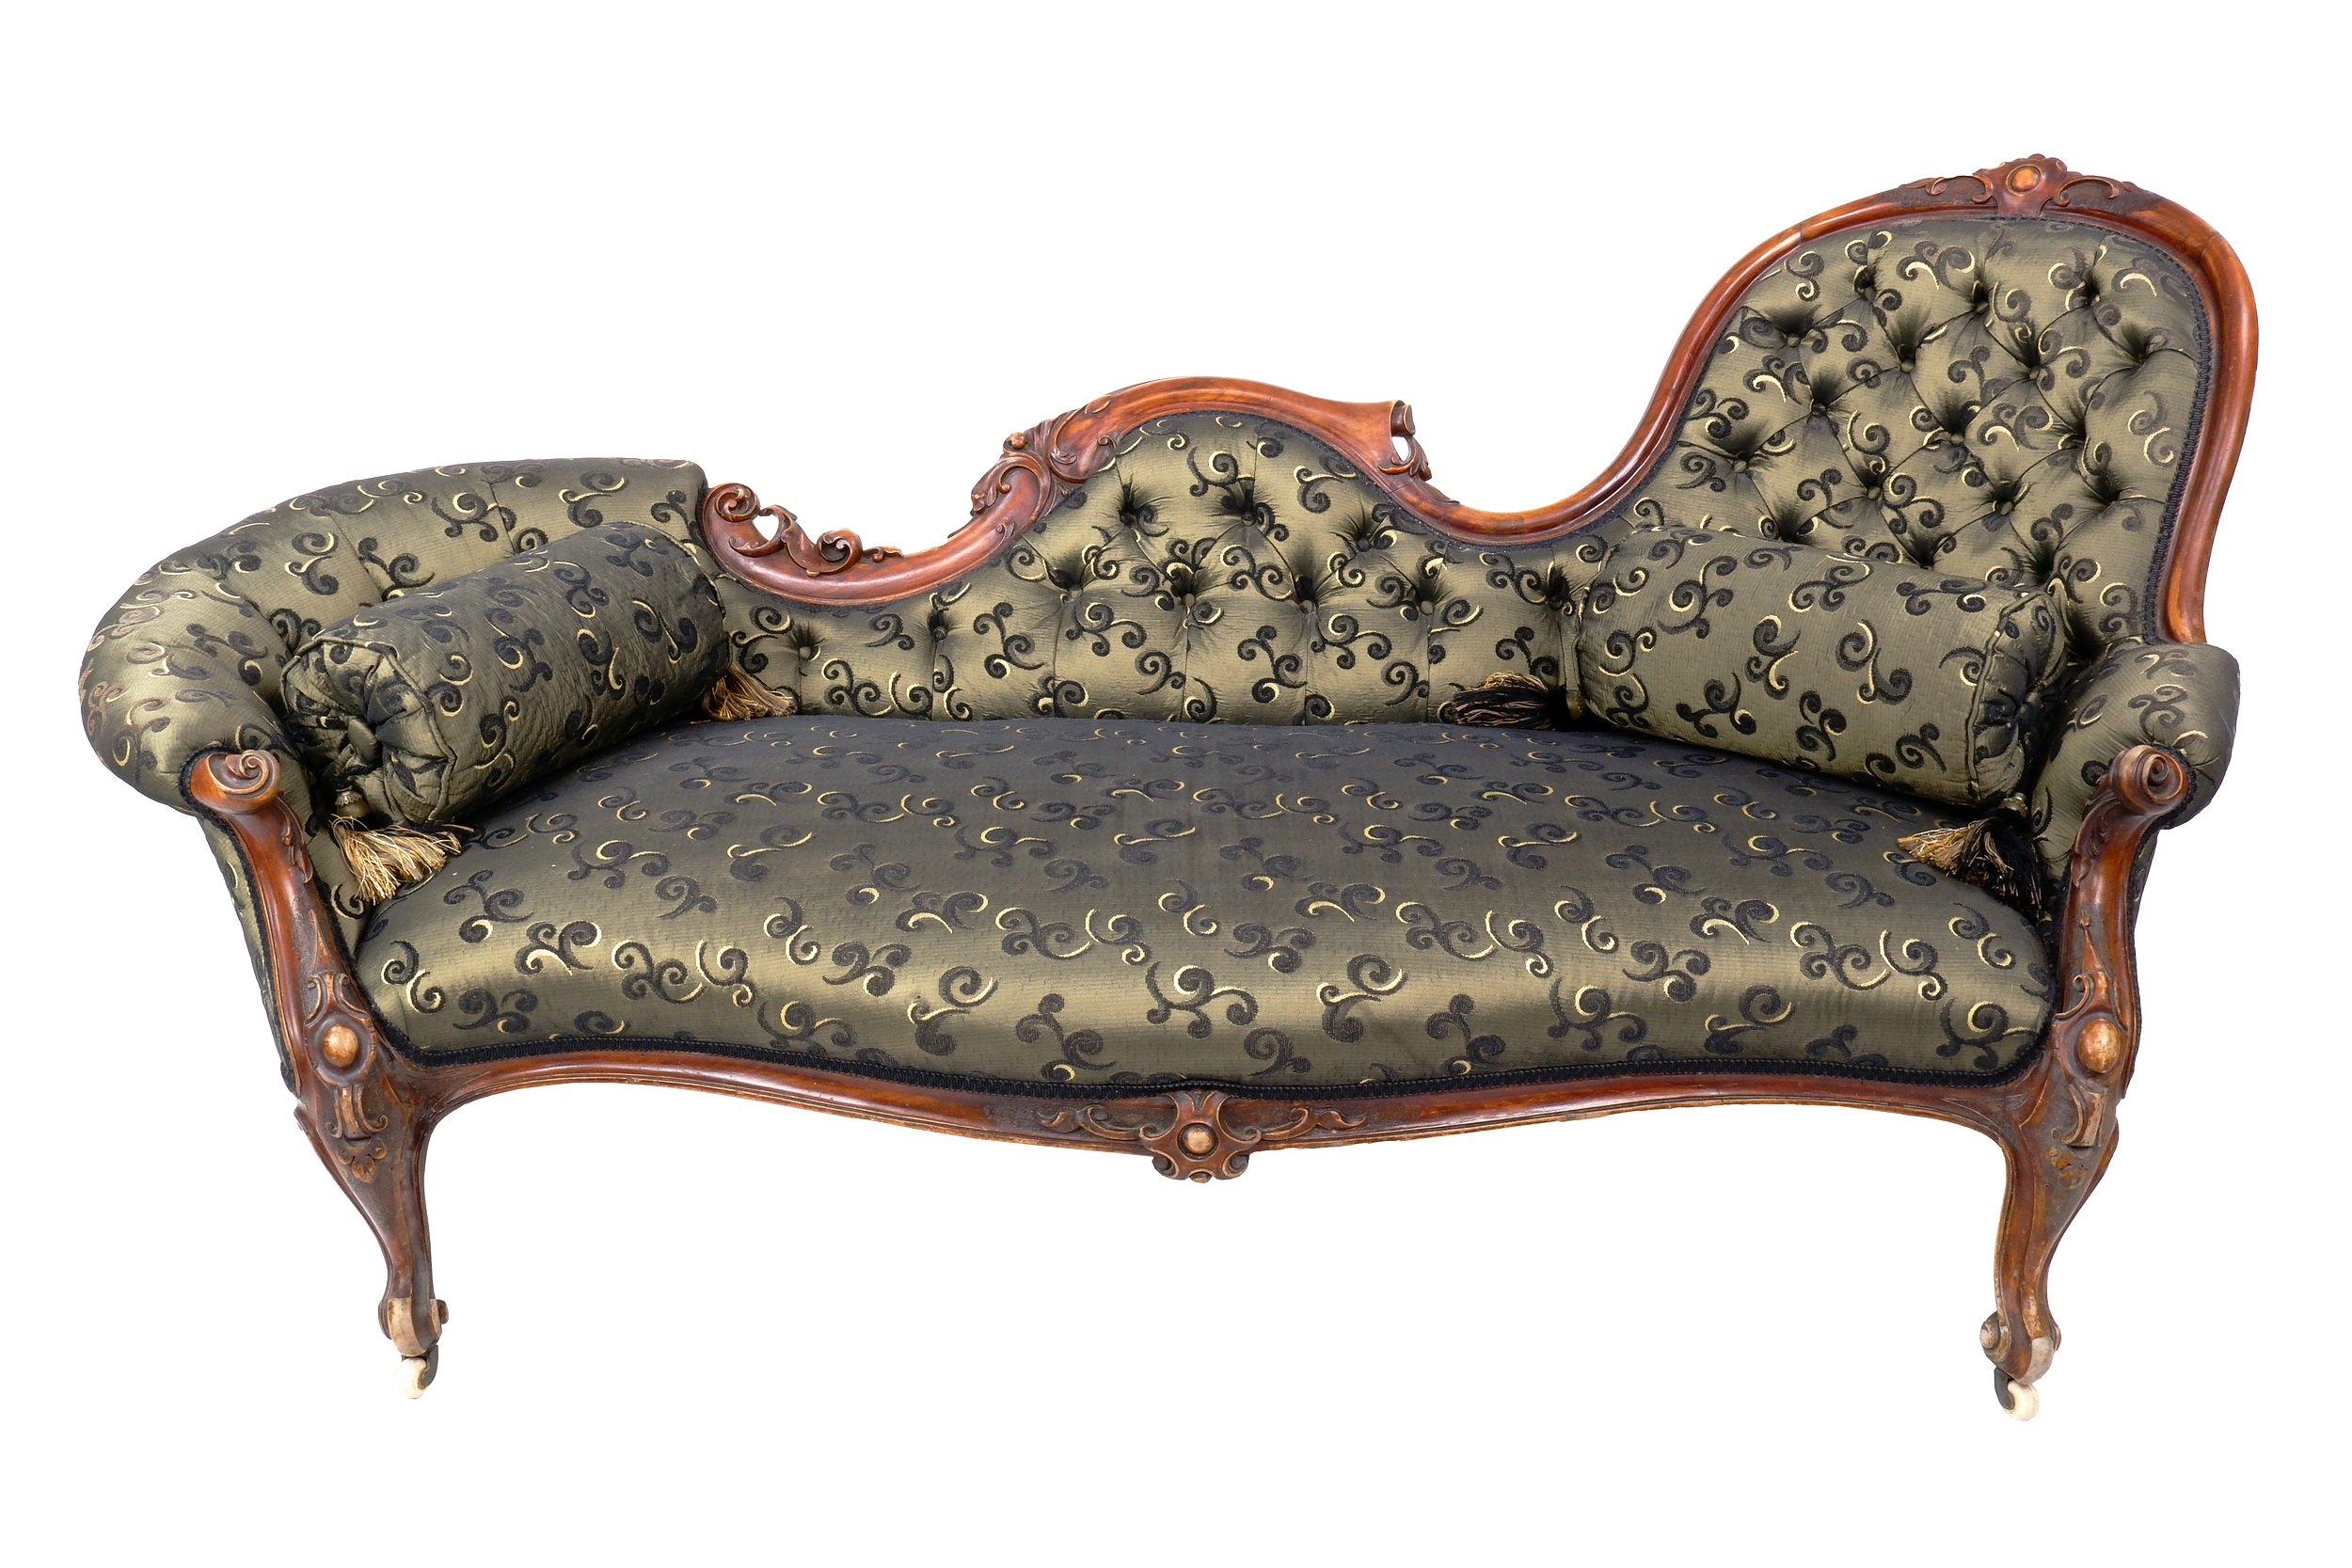 'Victorian Walnut Chaise Lounge with Buttoned Brocade Upholstery Circa 1880'